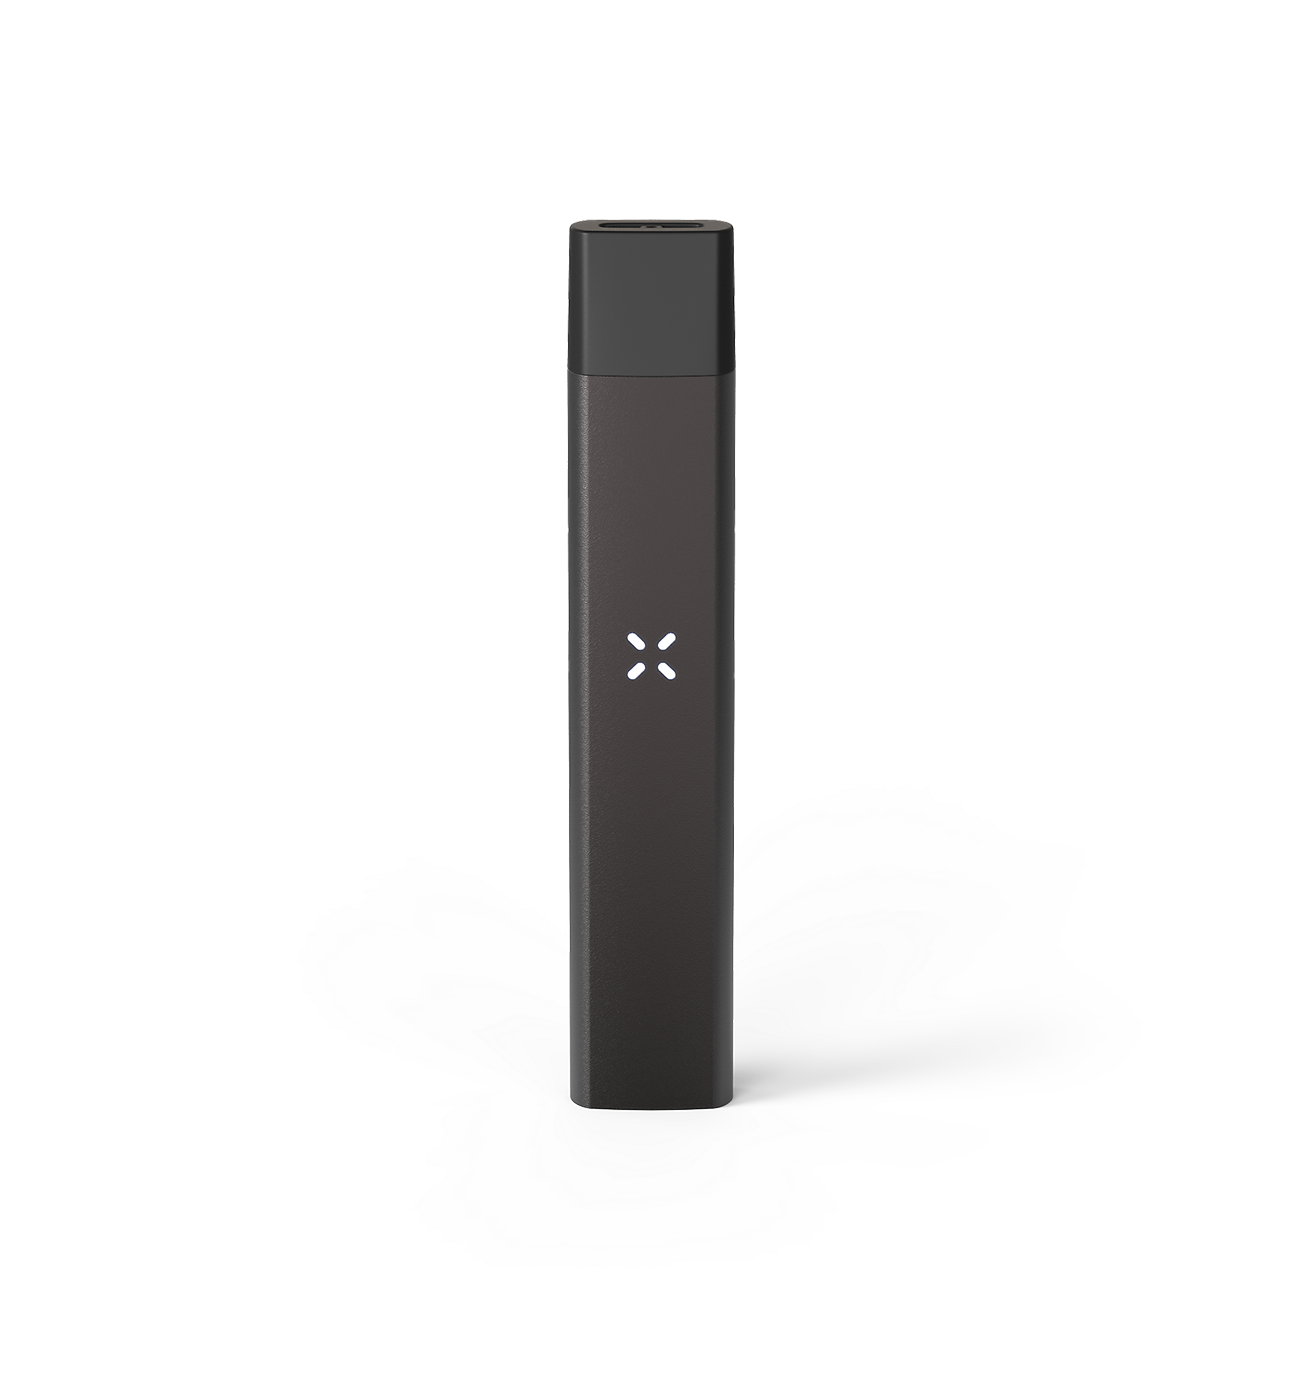 The PAX Era is a low-profile personal vaporizer with smartphone capabilities and provides complete control over temperatures, flavor, and cloud size. The Era device is a complete system that pairs with PAX SimpleClick™ interchangeable Era and Era's Full Flavor Pods.